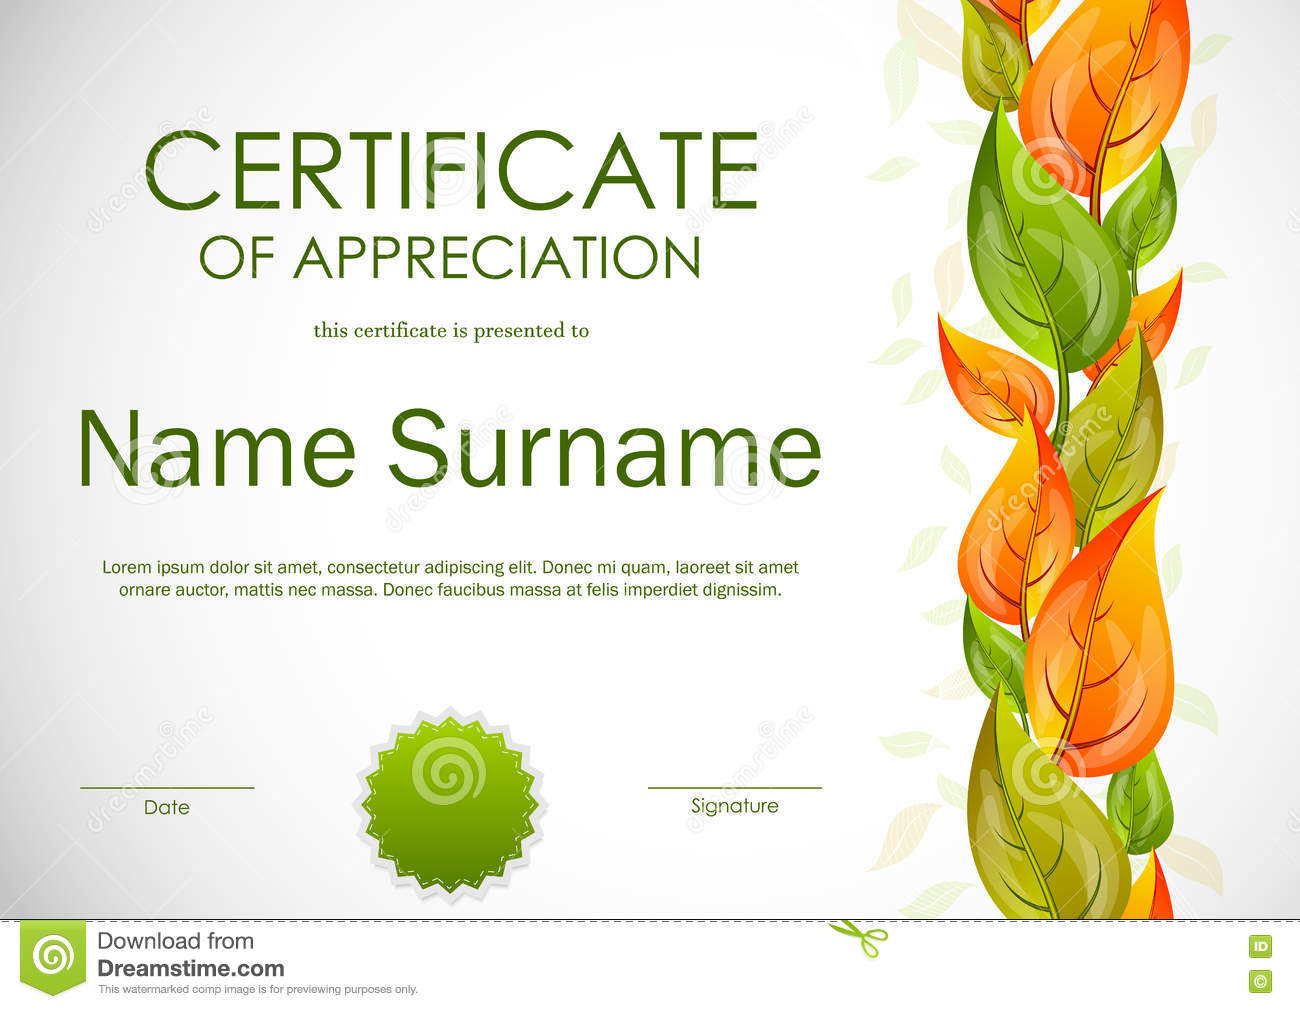 Certificate templates28 cricket certificate templates 22 well 100 of templates free free certif alramifo Choice Image